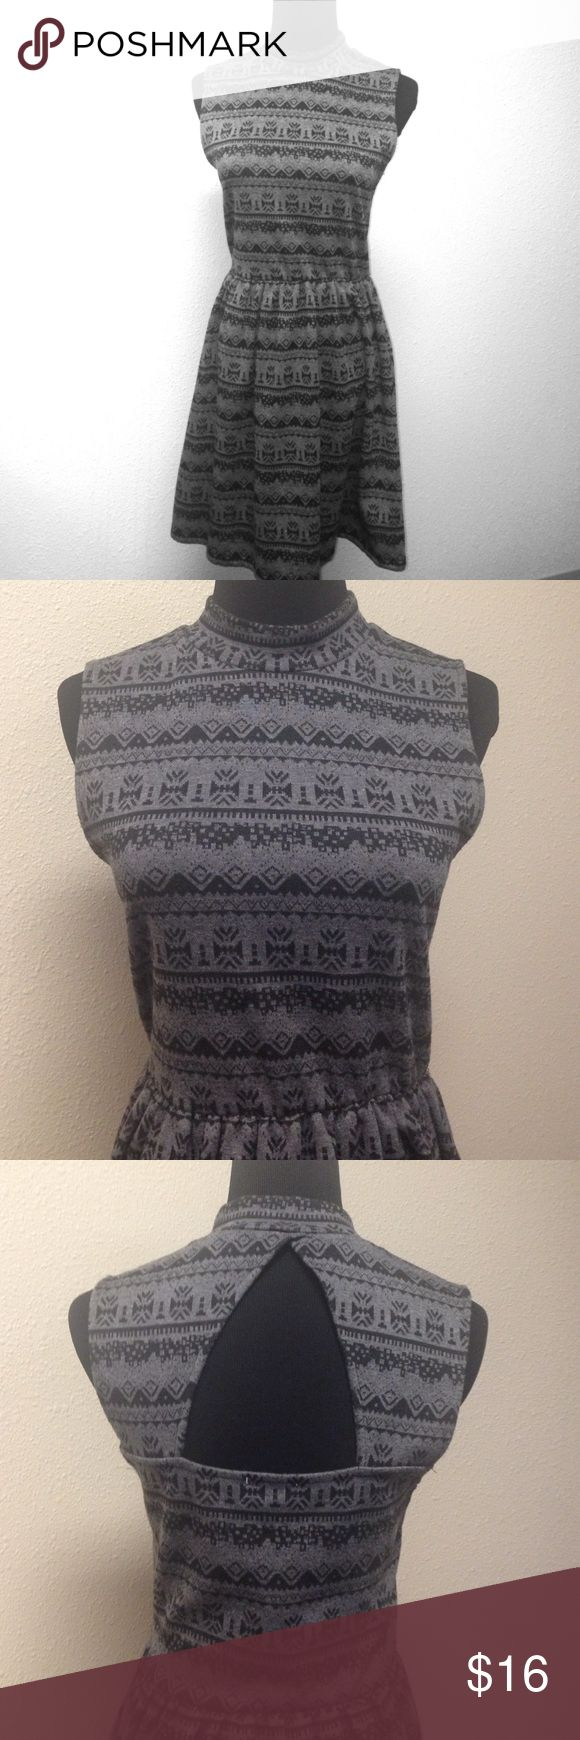 "Open Back Fit and Flare Mini Dress Excellent condition.  Black and gray patterned mini dress.  Open back, mock neck, pullover, elastic waist, sleeveless.  Approximate measurements laying flat: chest 16"" total length 33"", skirt length 17.5"". Stretchy.  80% Polyester 17% Rayon 3% Spandex. One Clothing Dresses Mini"